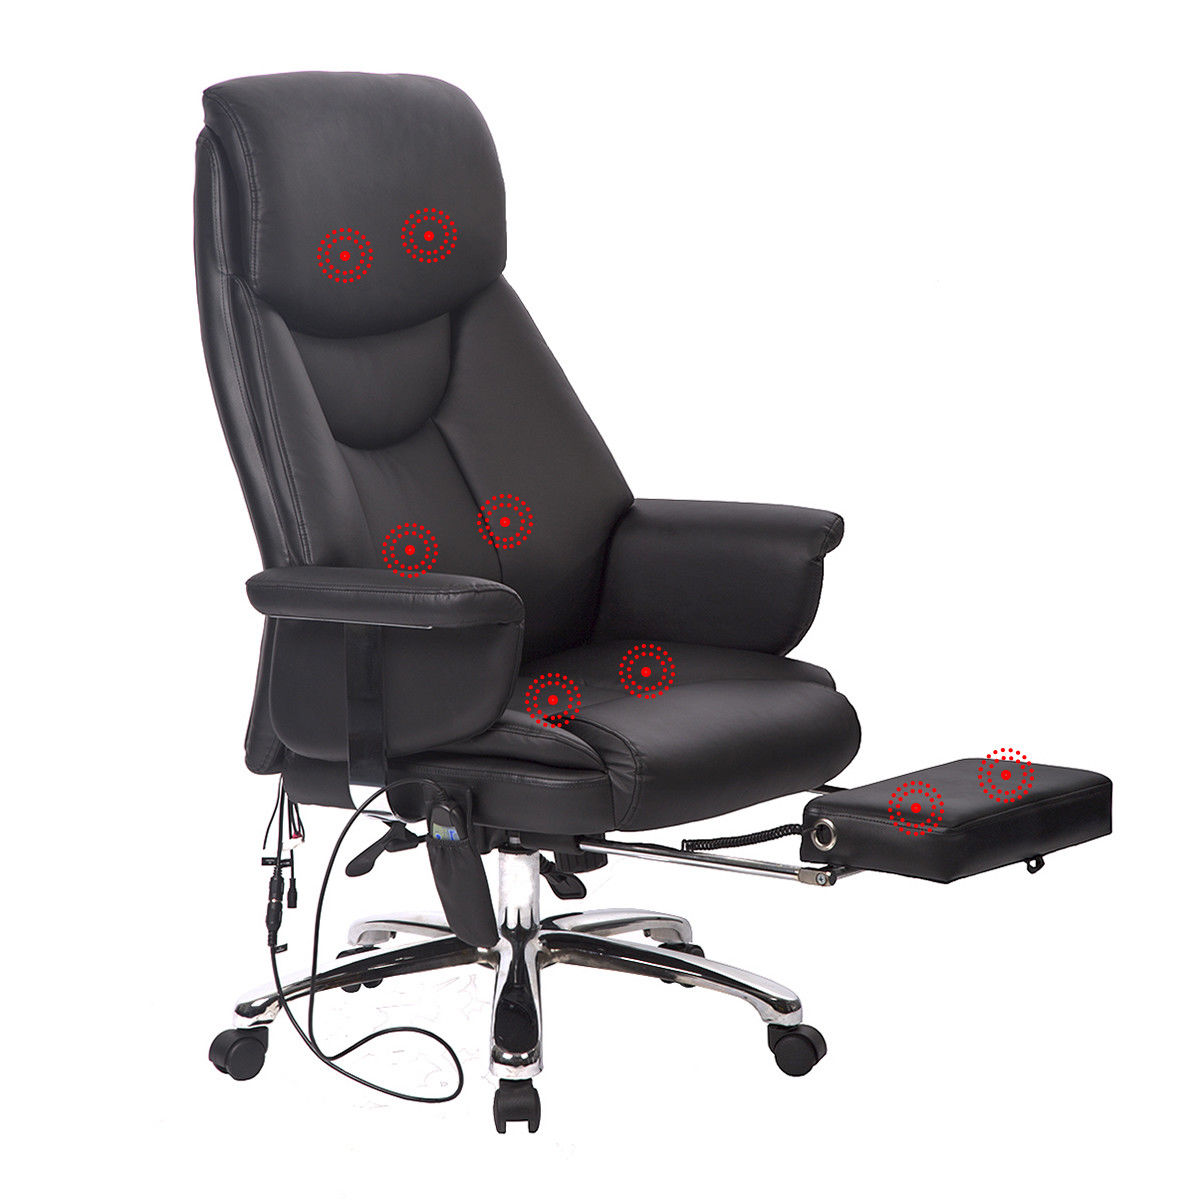 Executive Office Massage Chair Vibrating Ergonomic